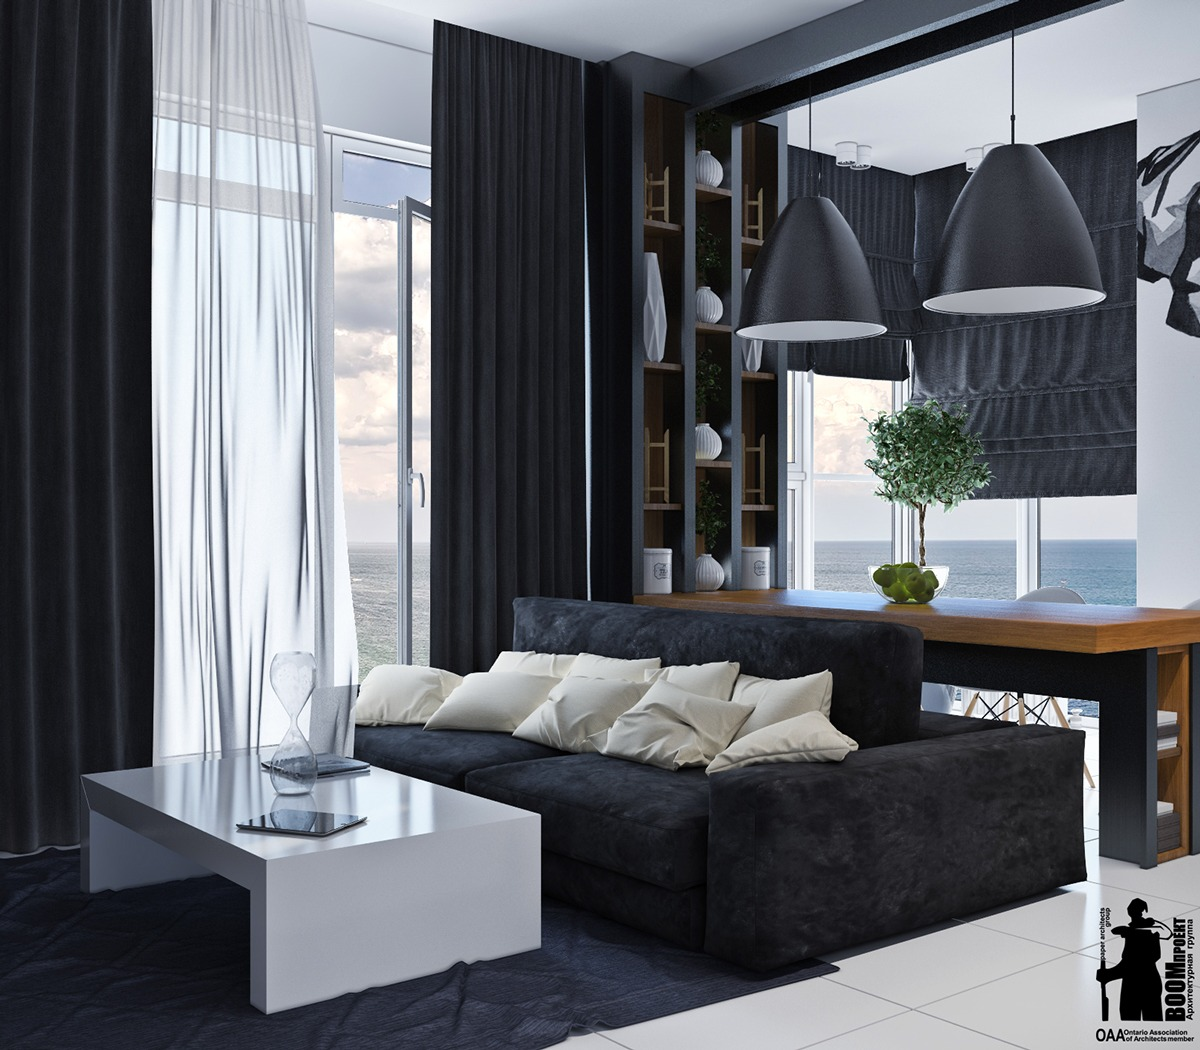 Monochromatic Room: Artistic Apartments With Monochromatic Color Schemes